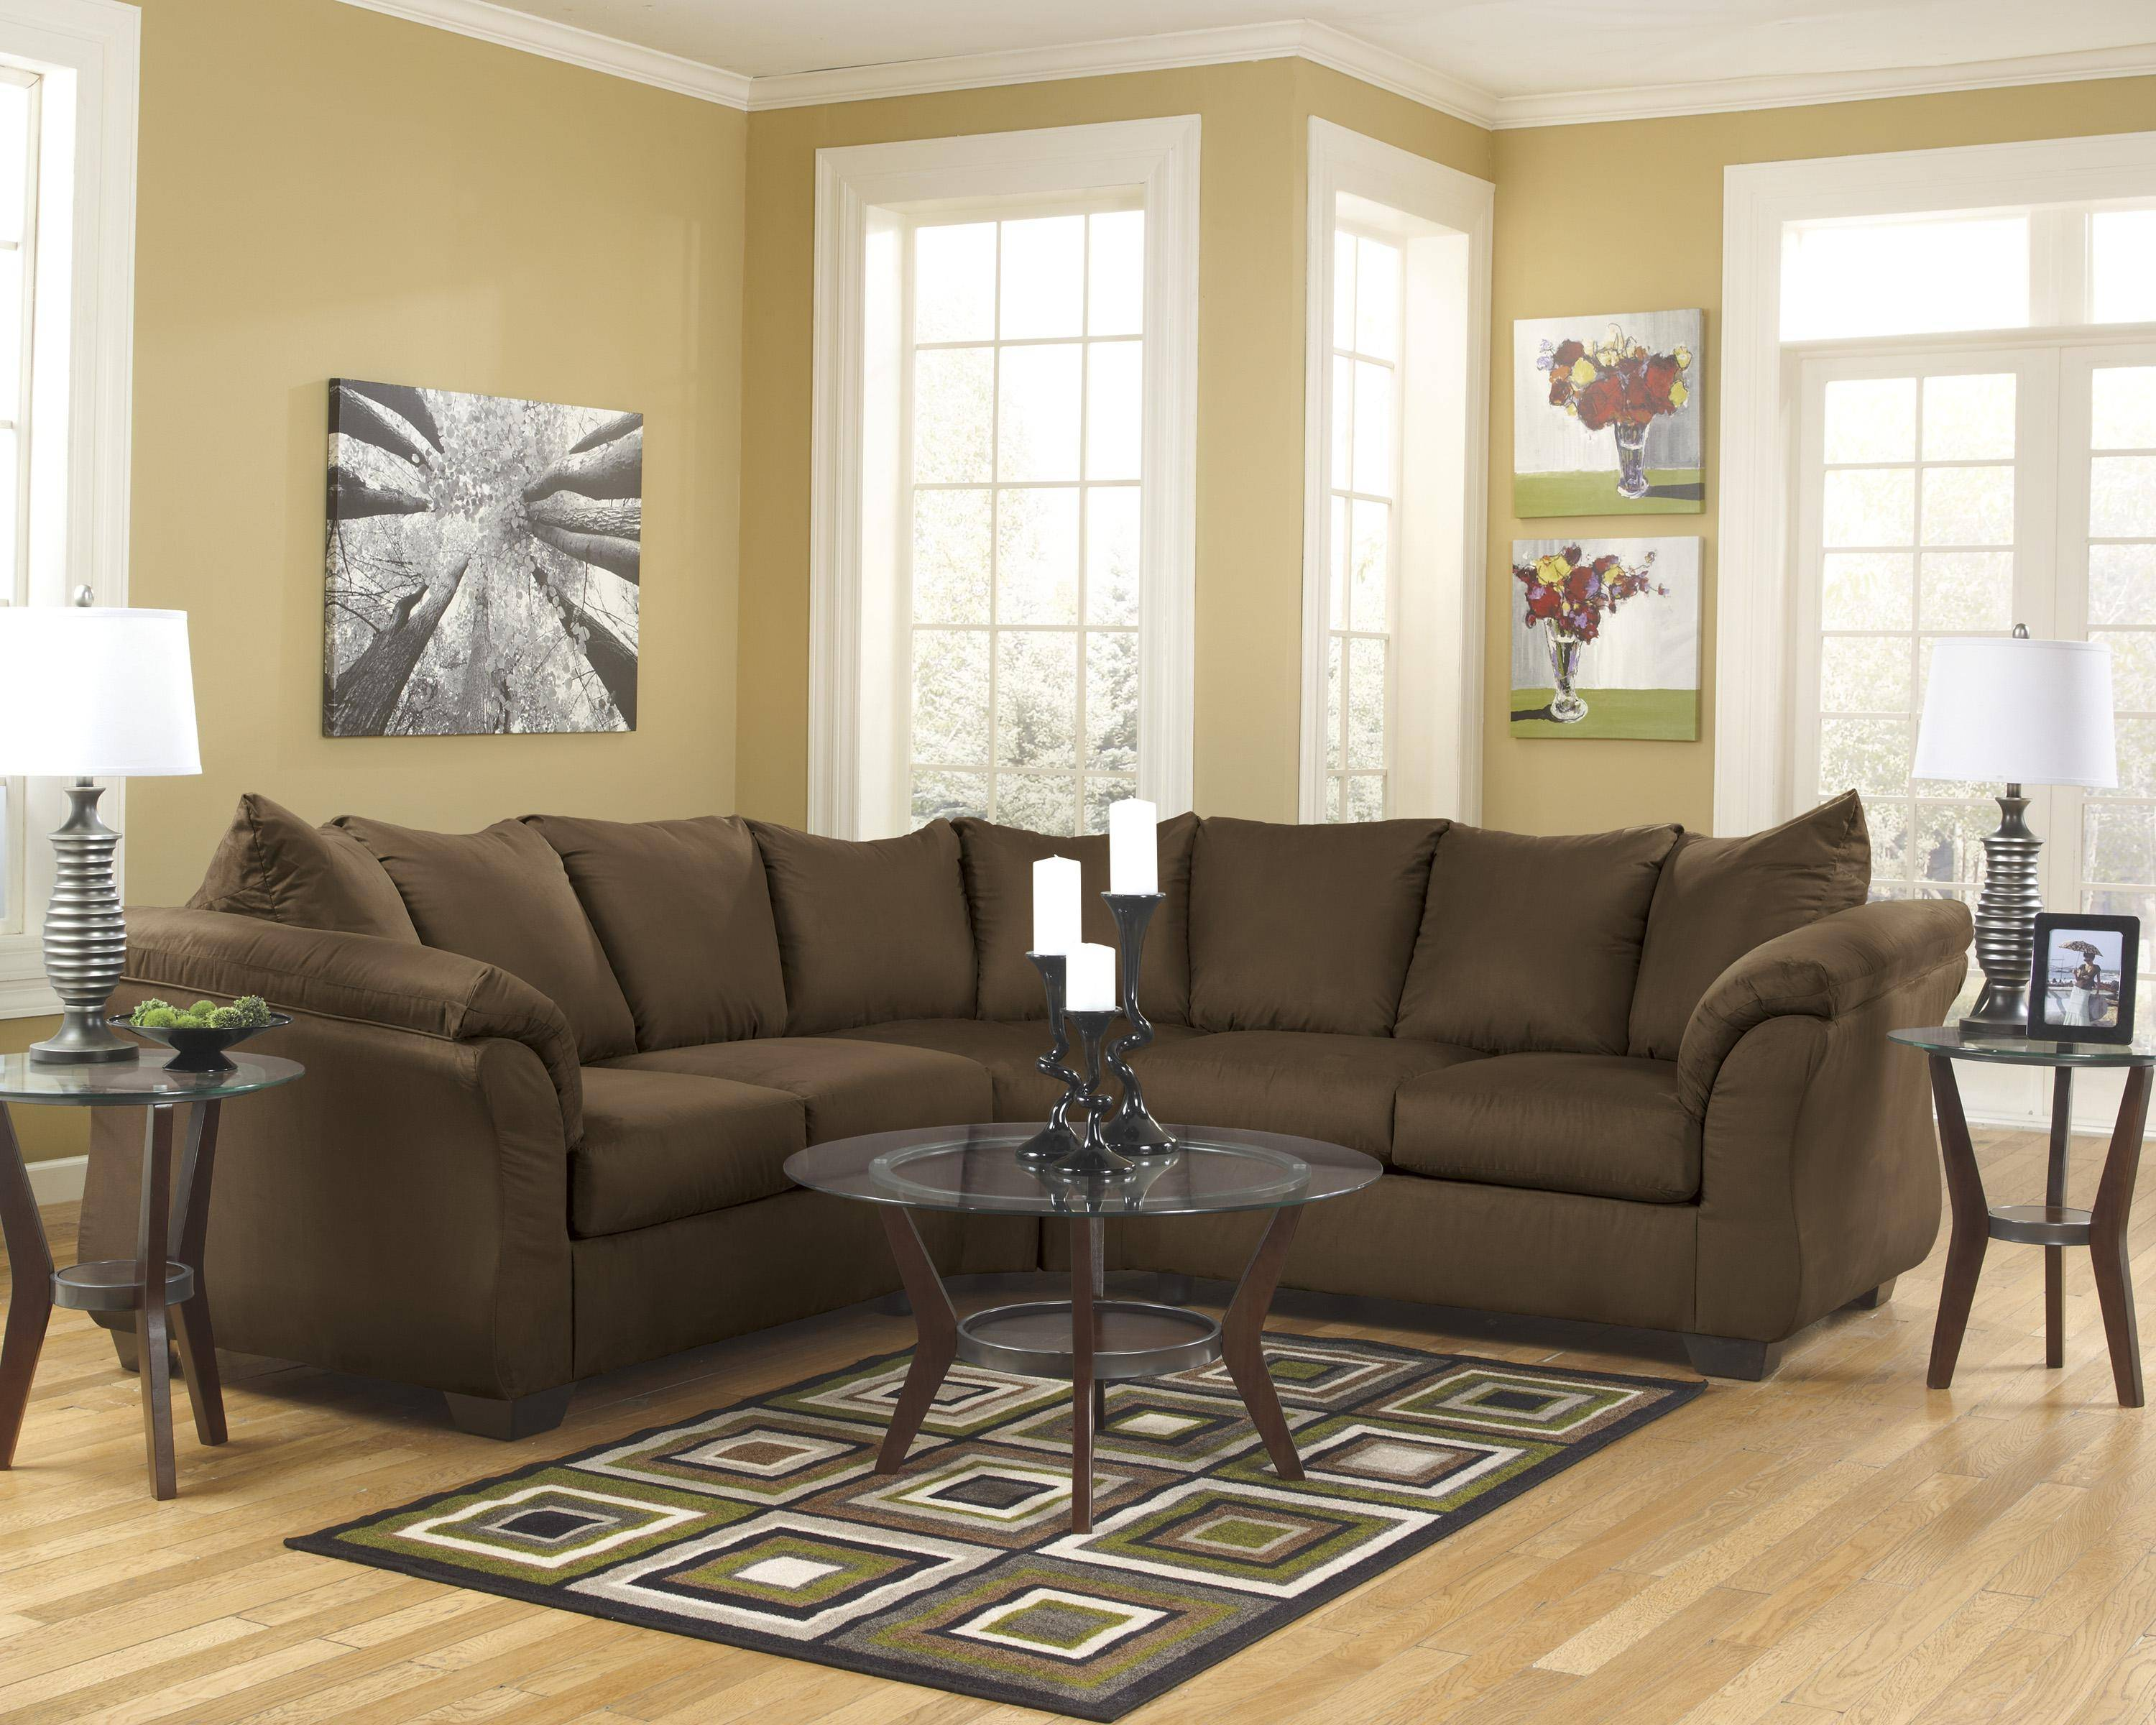 Astounding Ashley Darcy 2 Piece Sectional In Cafe 75004 55 56 Kit Buy Gmtry Best Dining Table And Chair Ideas Images Gmtryco